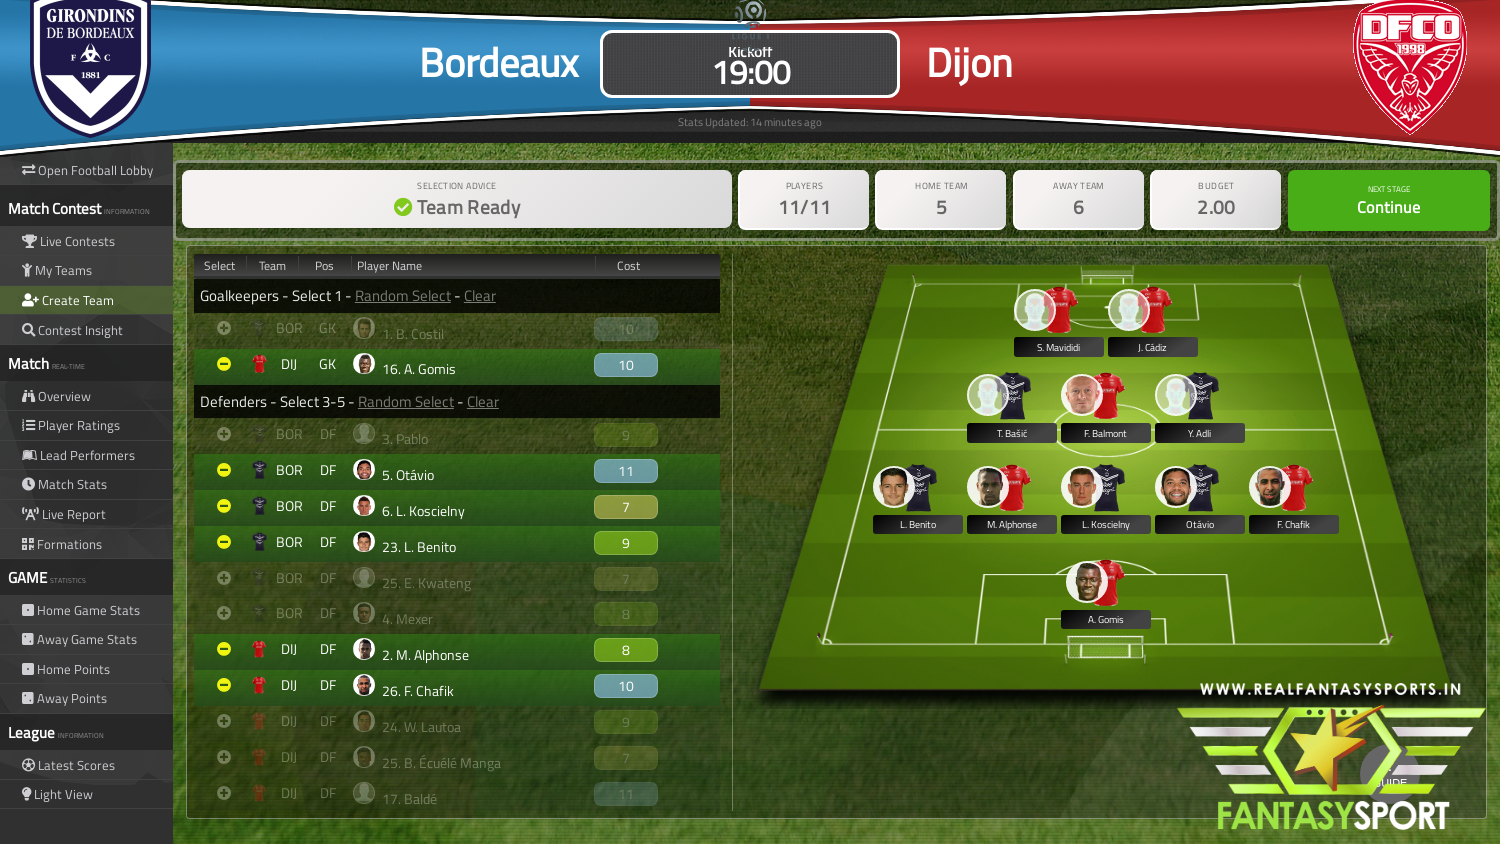 Fantasy Football Bordeaux Vs Dijon